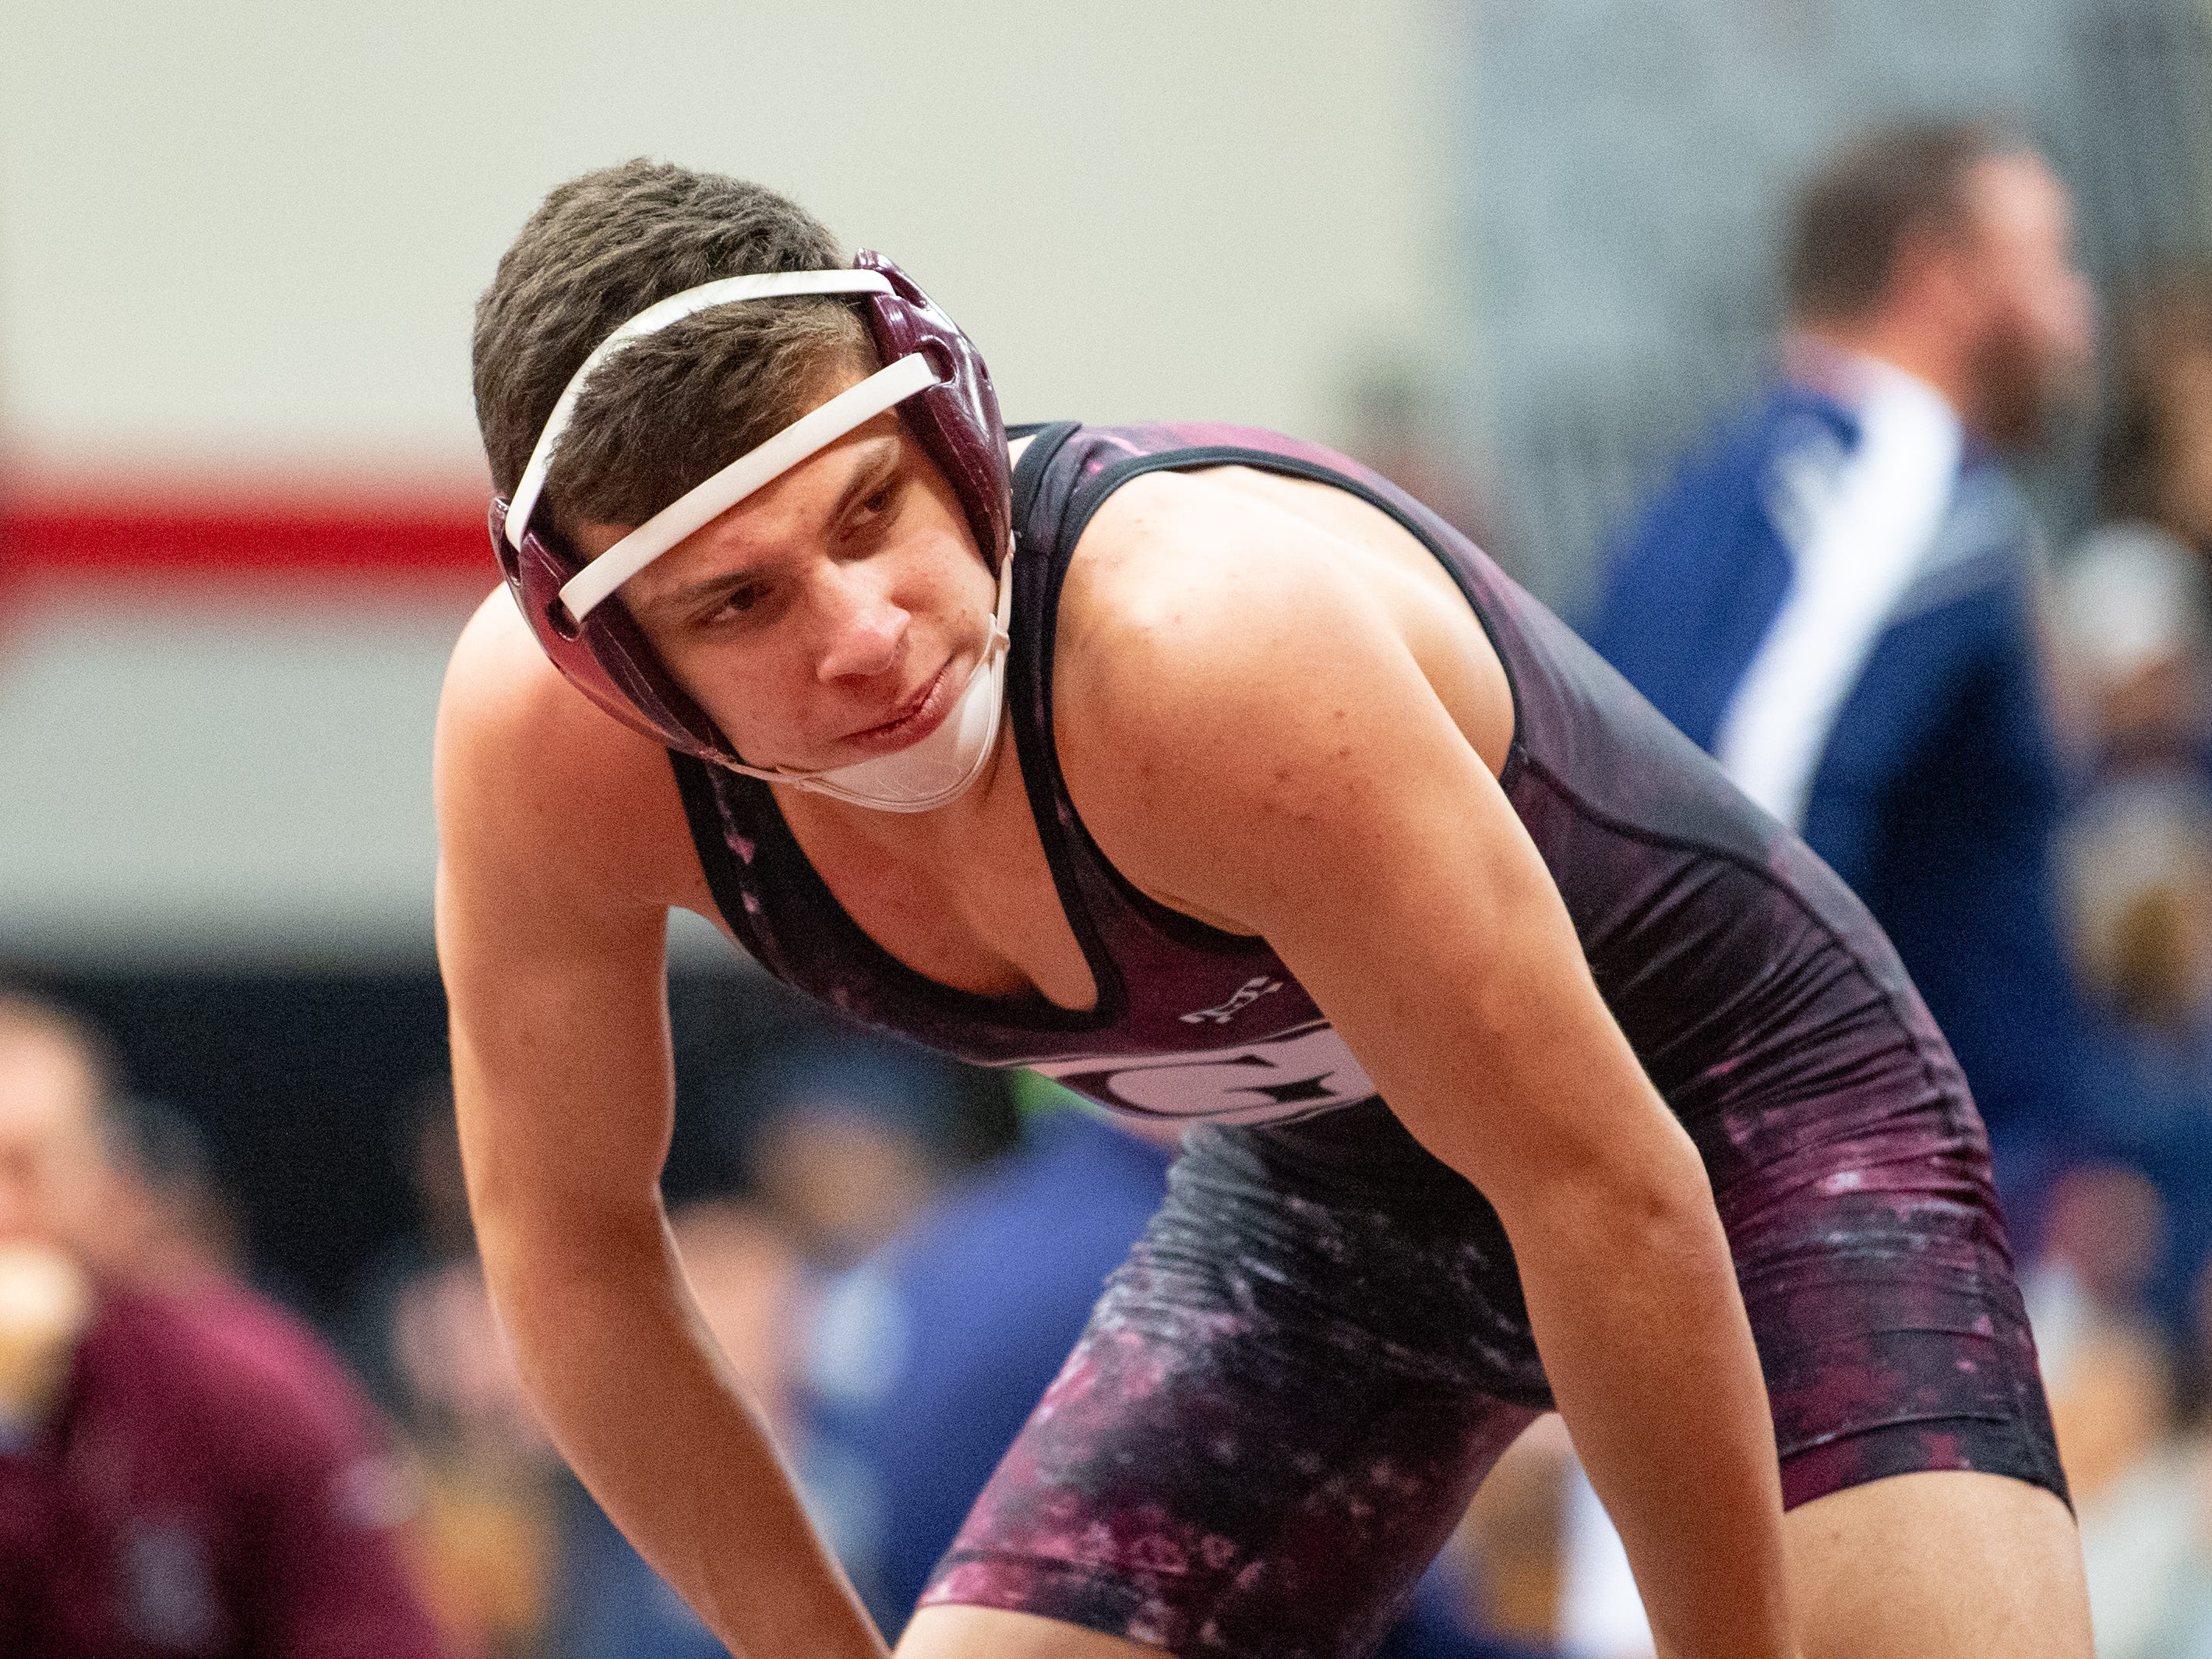 Luke Sainato of Gettysburg is ready for his match during the PIAA District 3 Section IV Wrestling Championships, Saturday, February 16, 2019 at South Western High School.